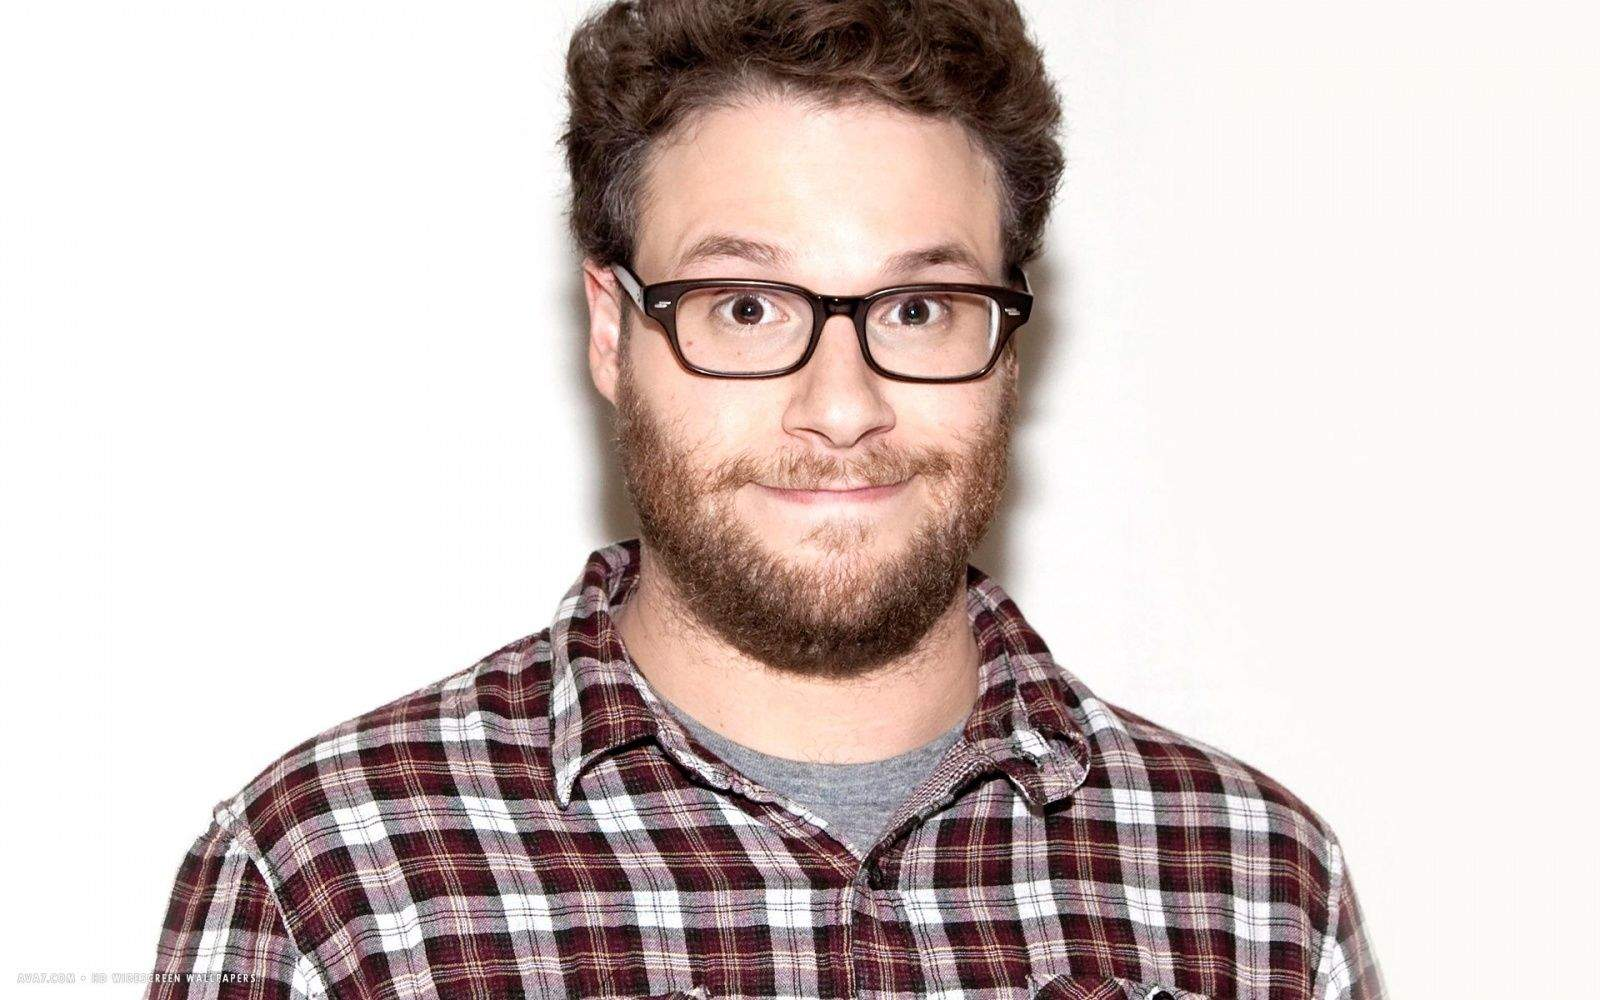 seth rogen fotos wallpapers high quality | download free